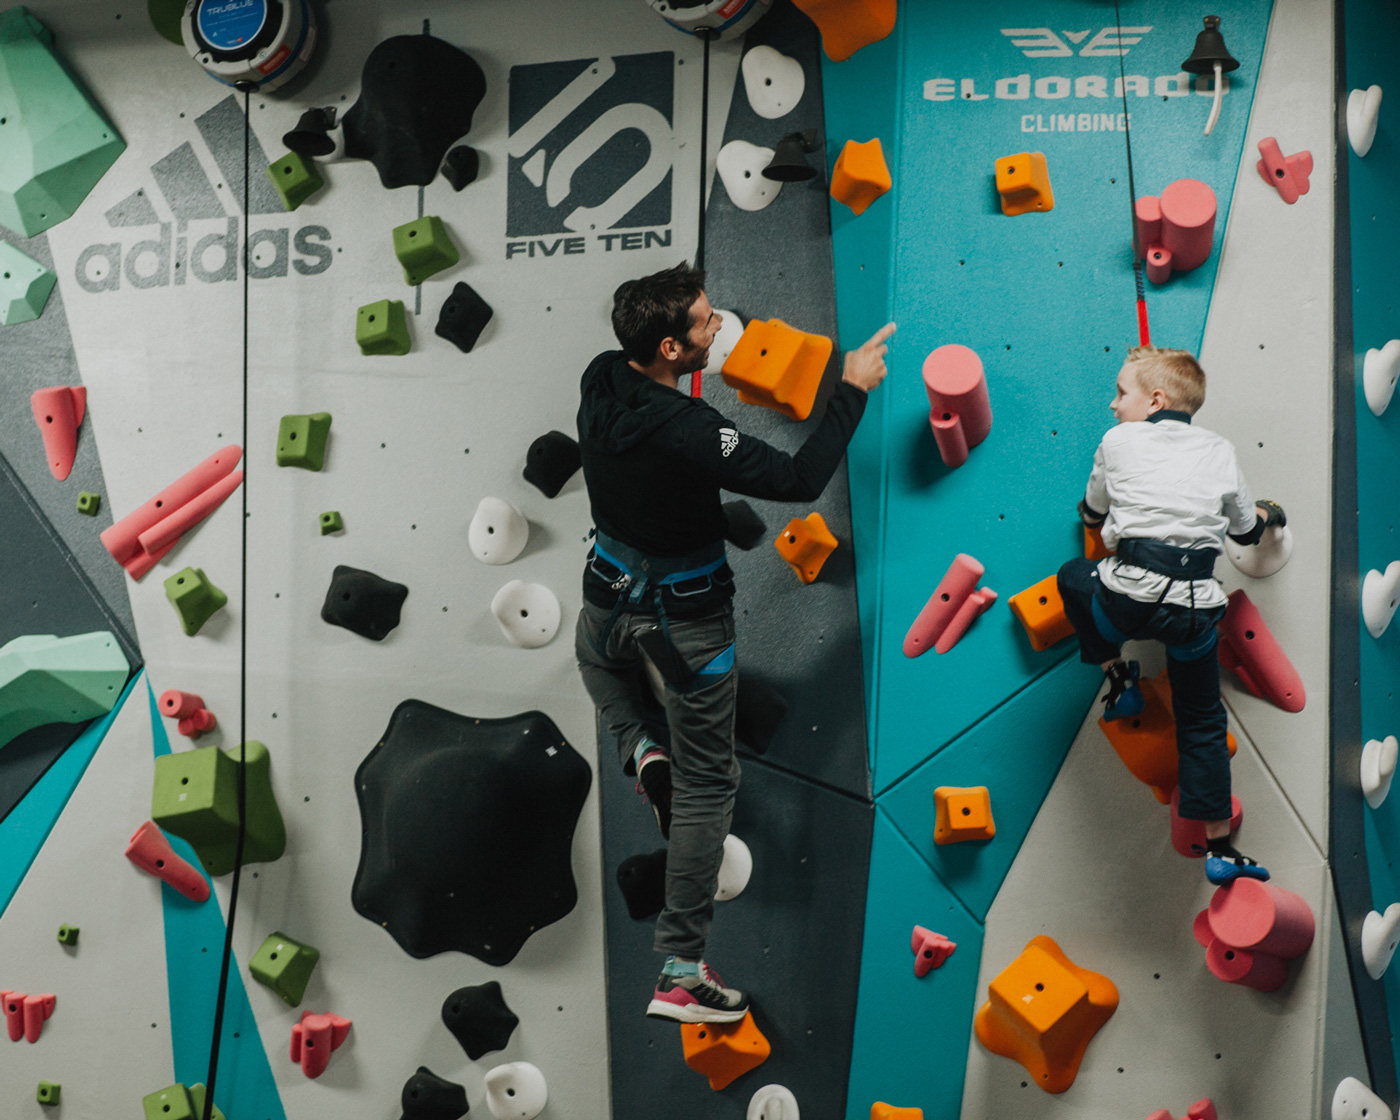 Kevin Jorgeson climbs on the 1climb wall with a boys and girls club member in santa rosa